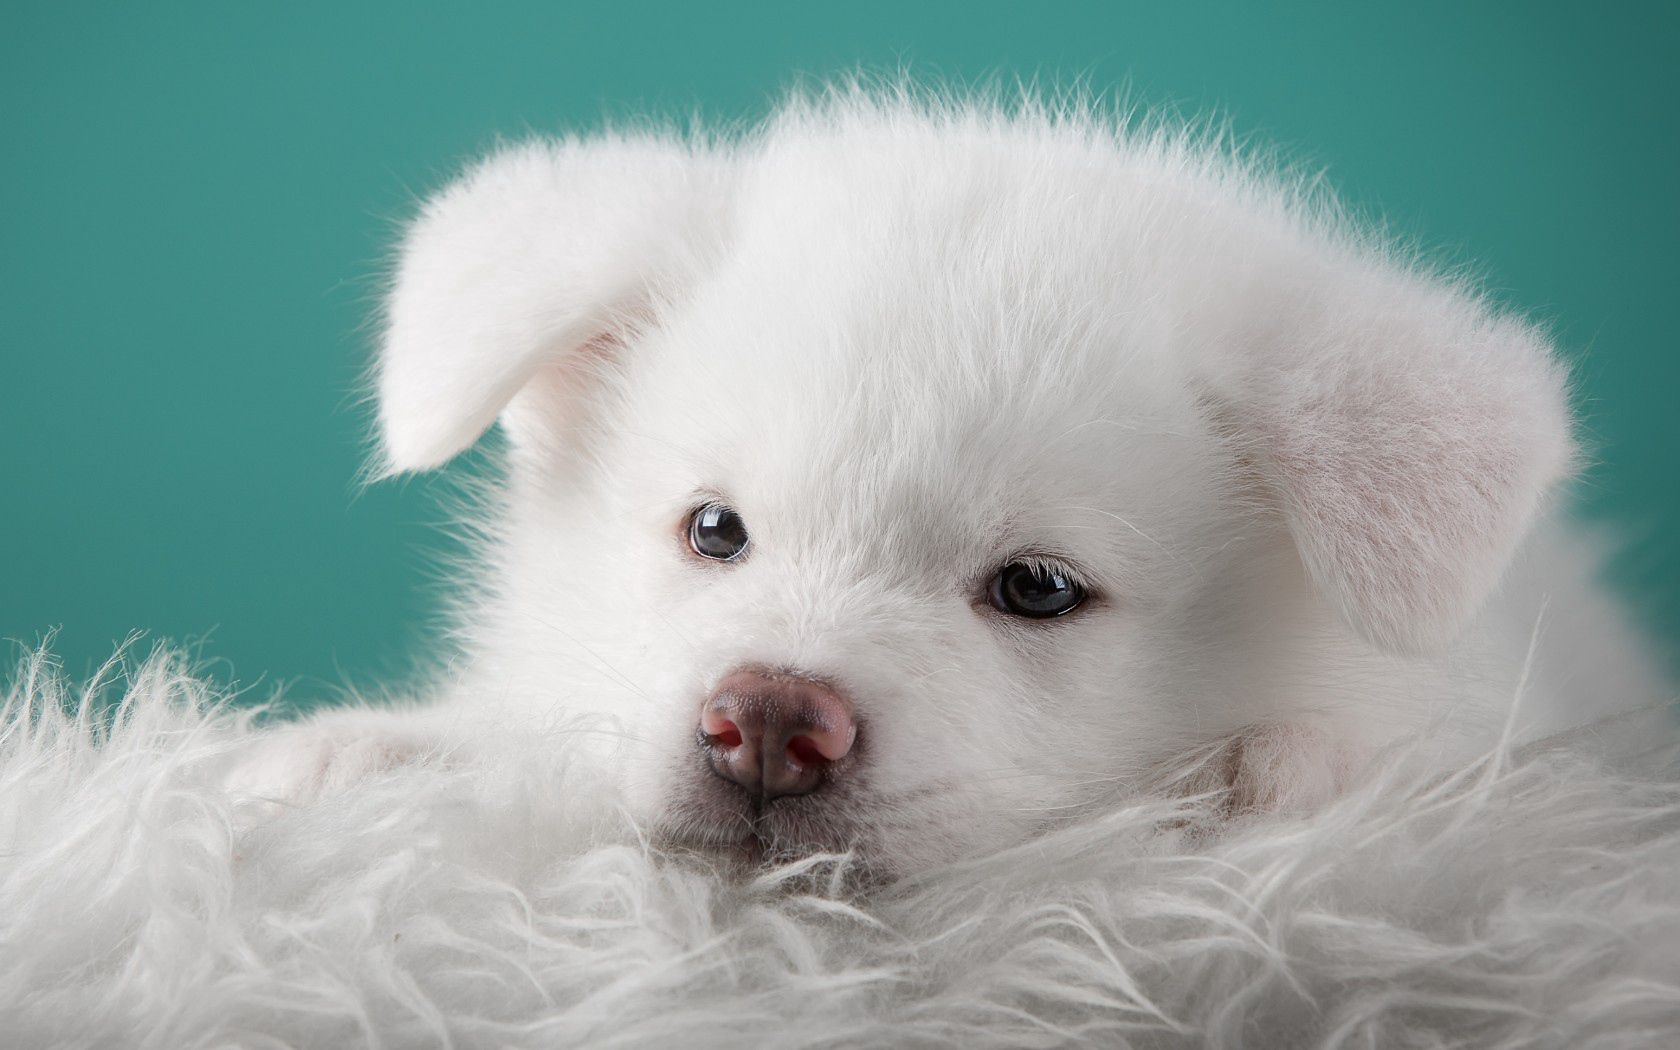 136592 download wallpaper Animals, Akita, Puppy, Dog screensavers and pictures for free